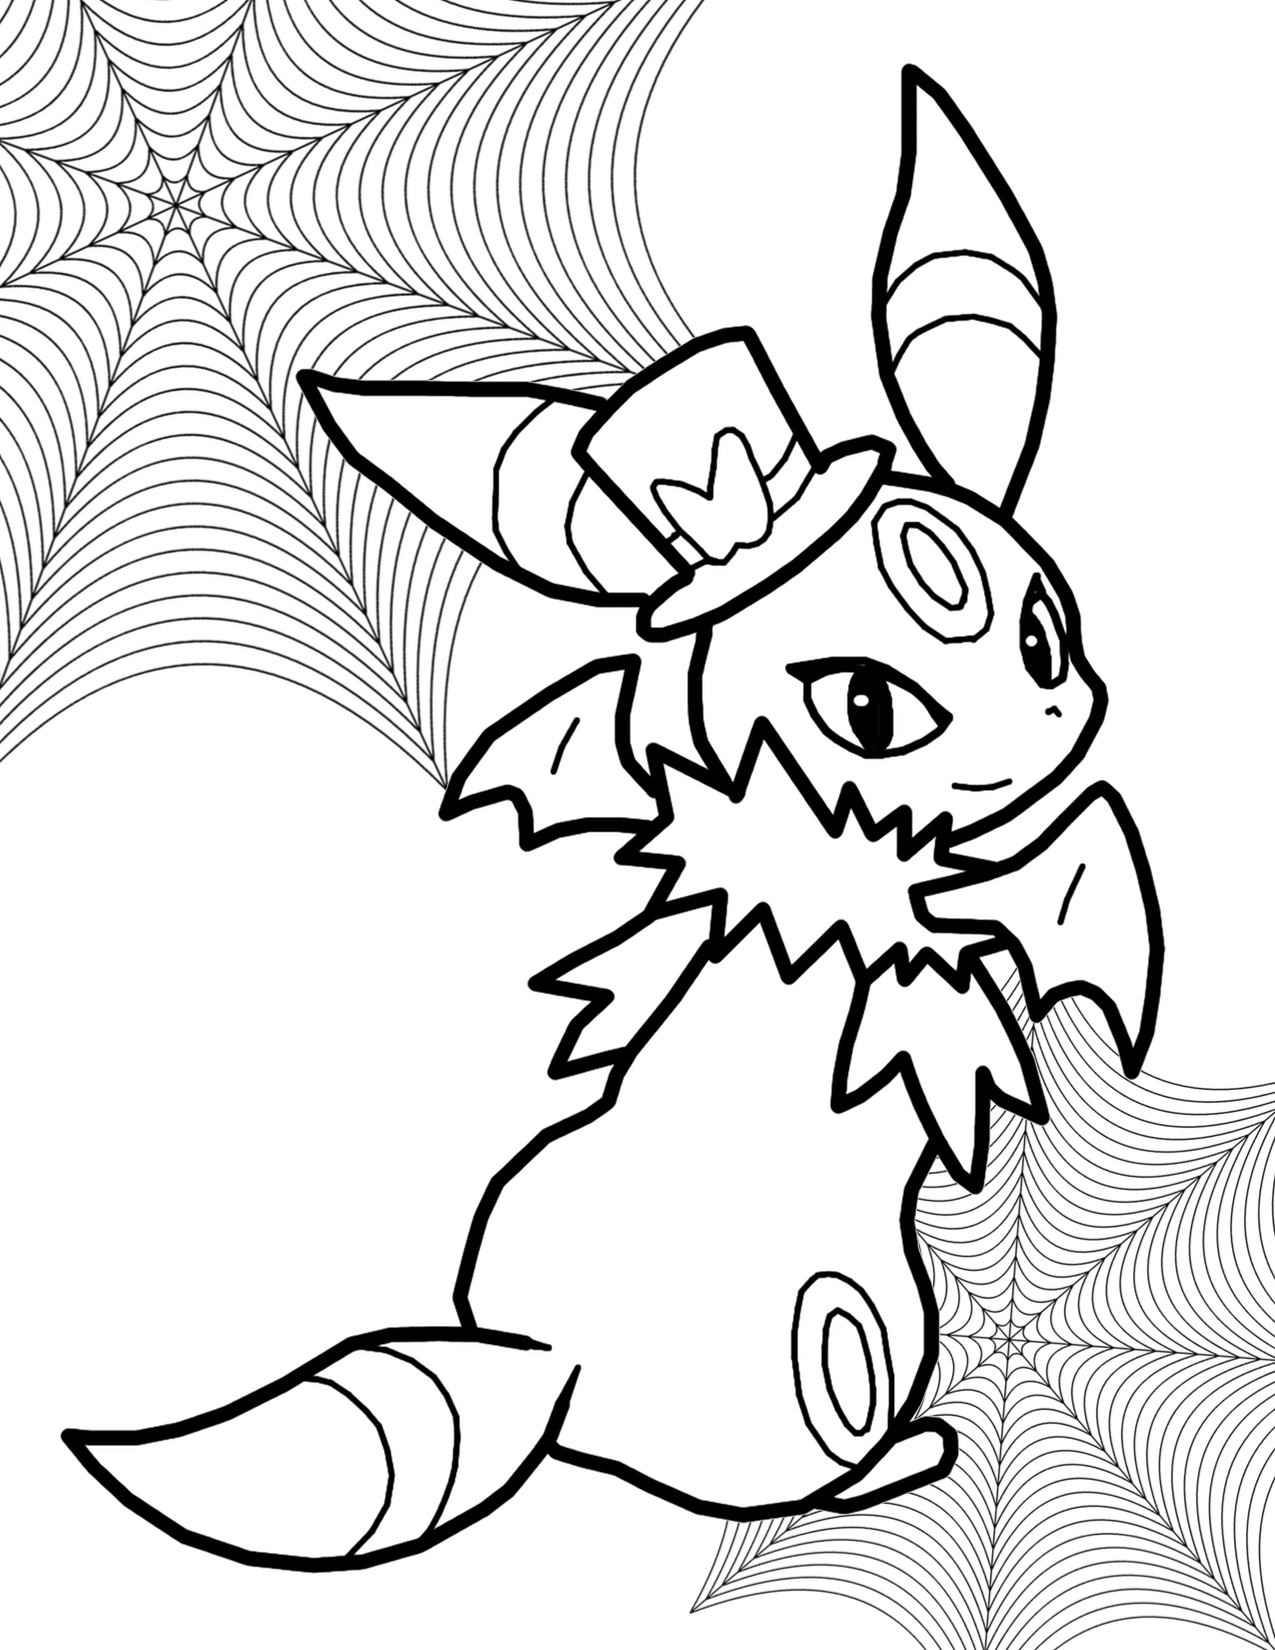 1275x1650 pokemon halloween coloring pages colouring for snazzy draw print - Coloring Pages Of Halloween